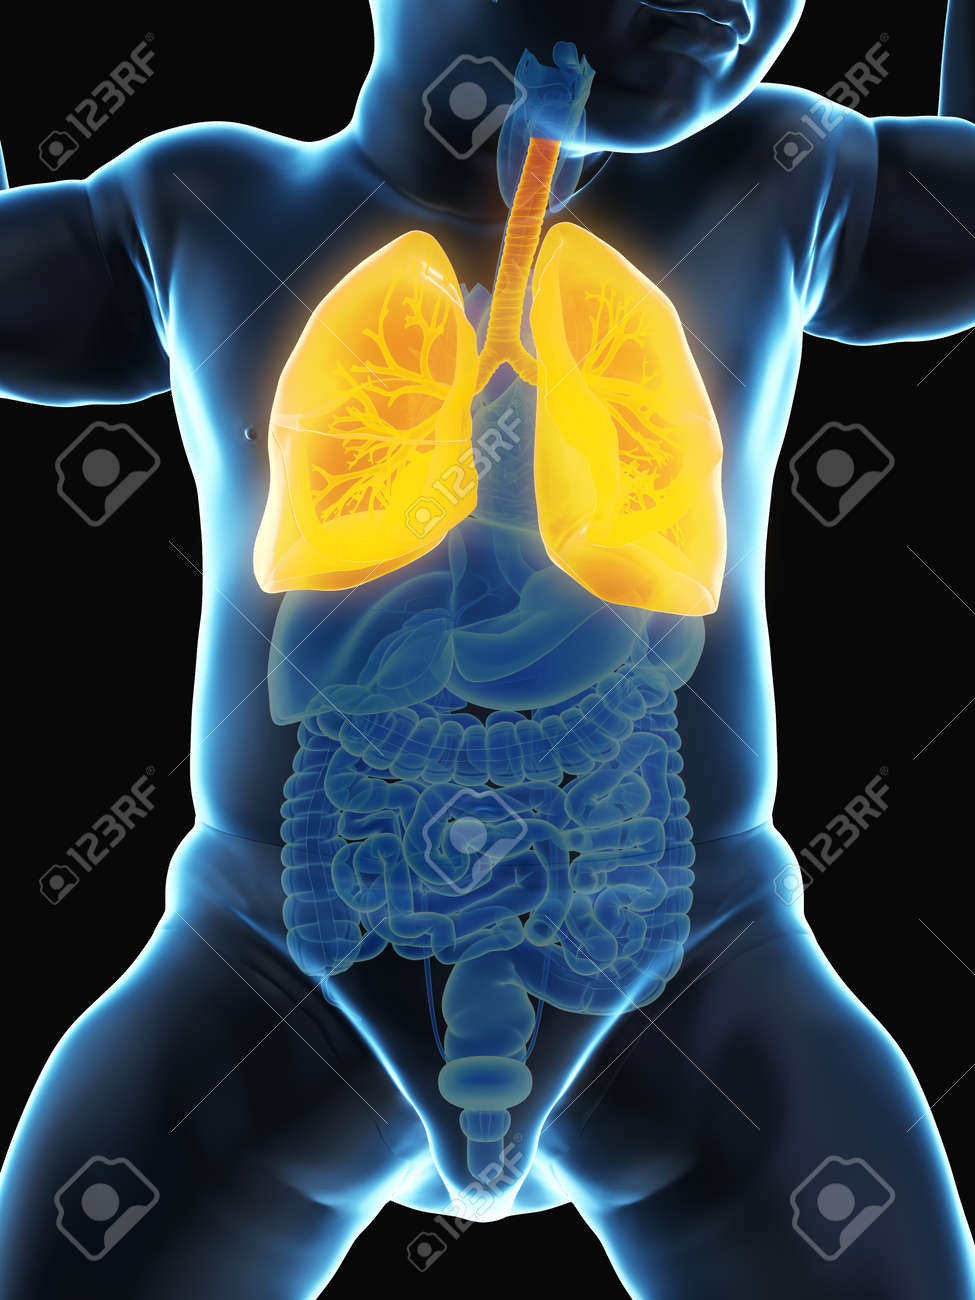 3d rendered medically accurate illustration of a babys lung - 125045992